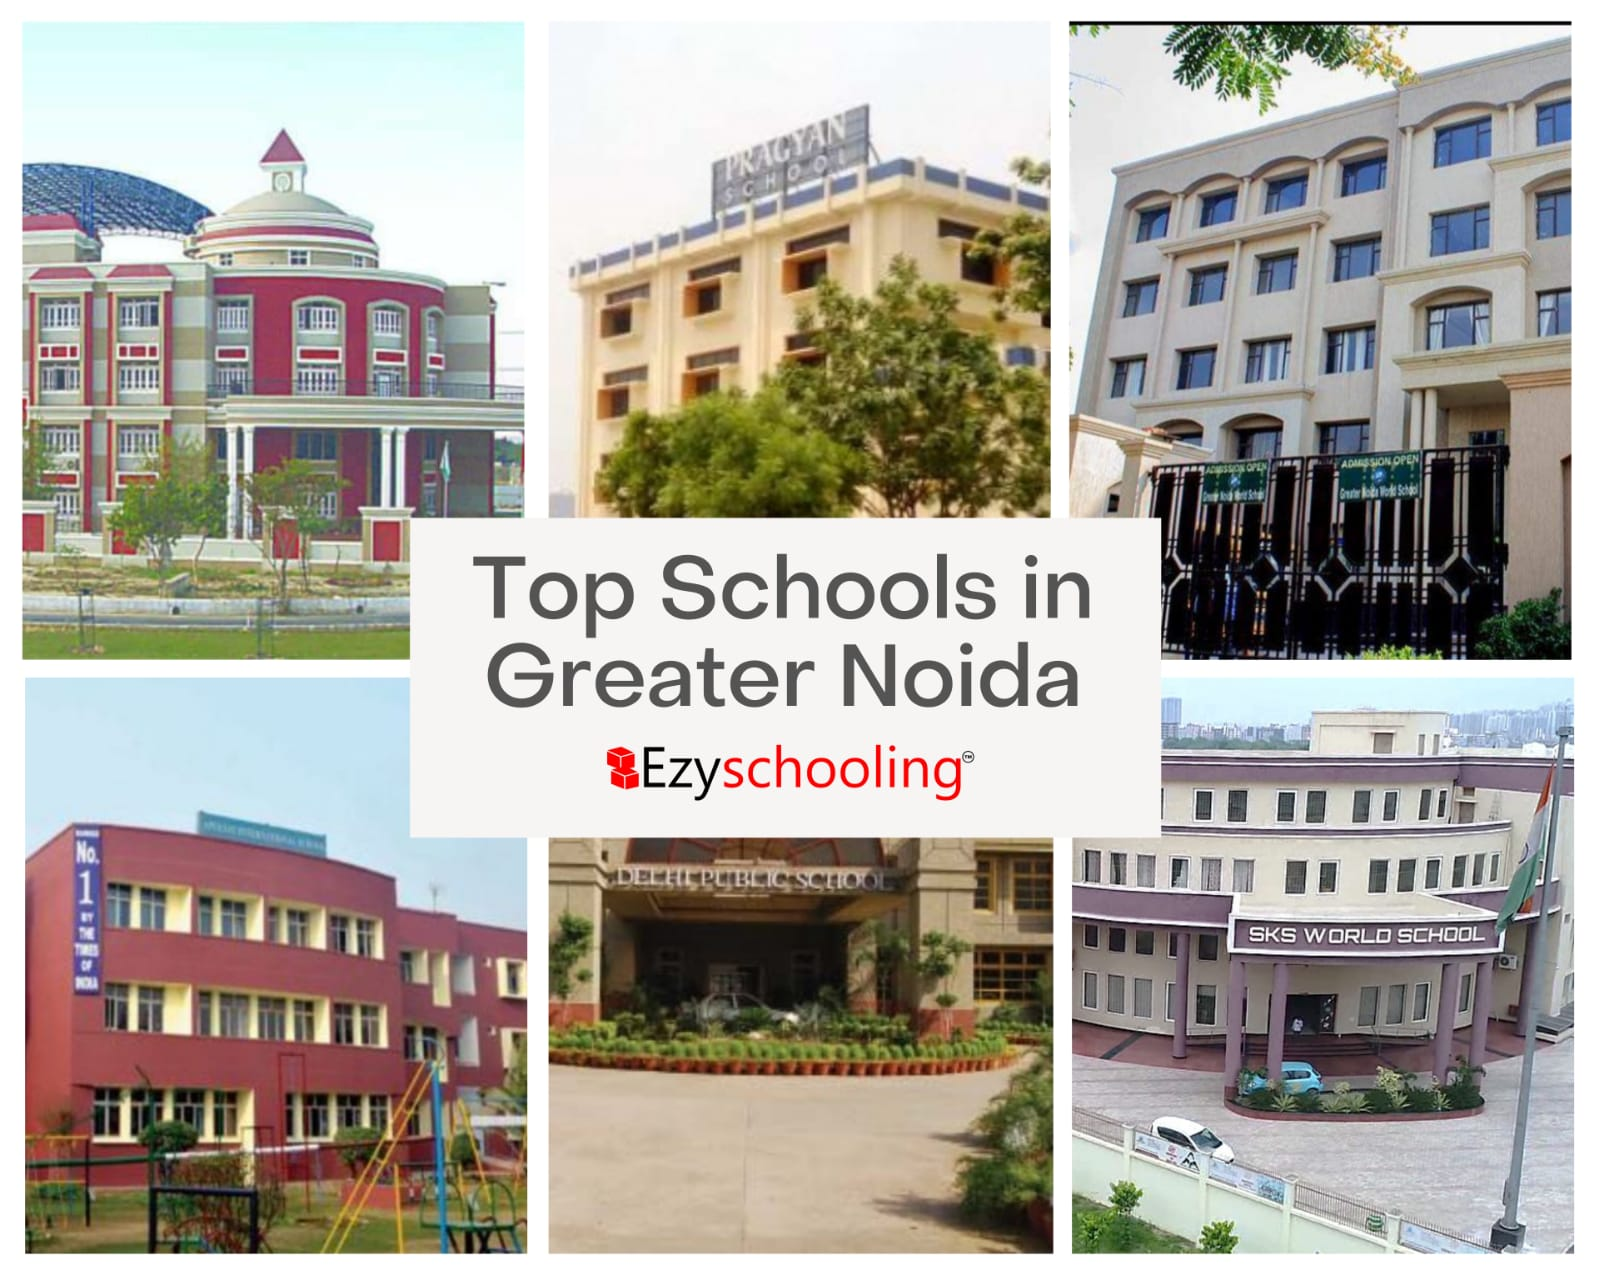 Schools in greater noida